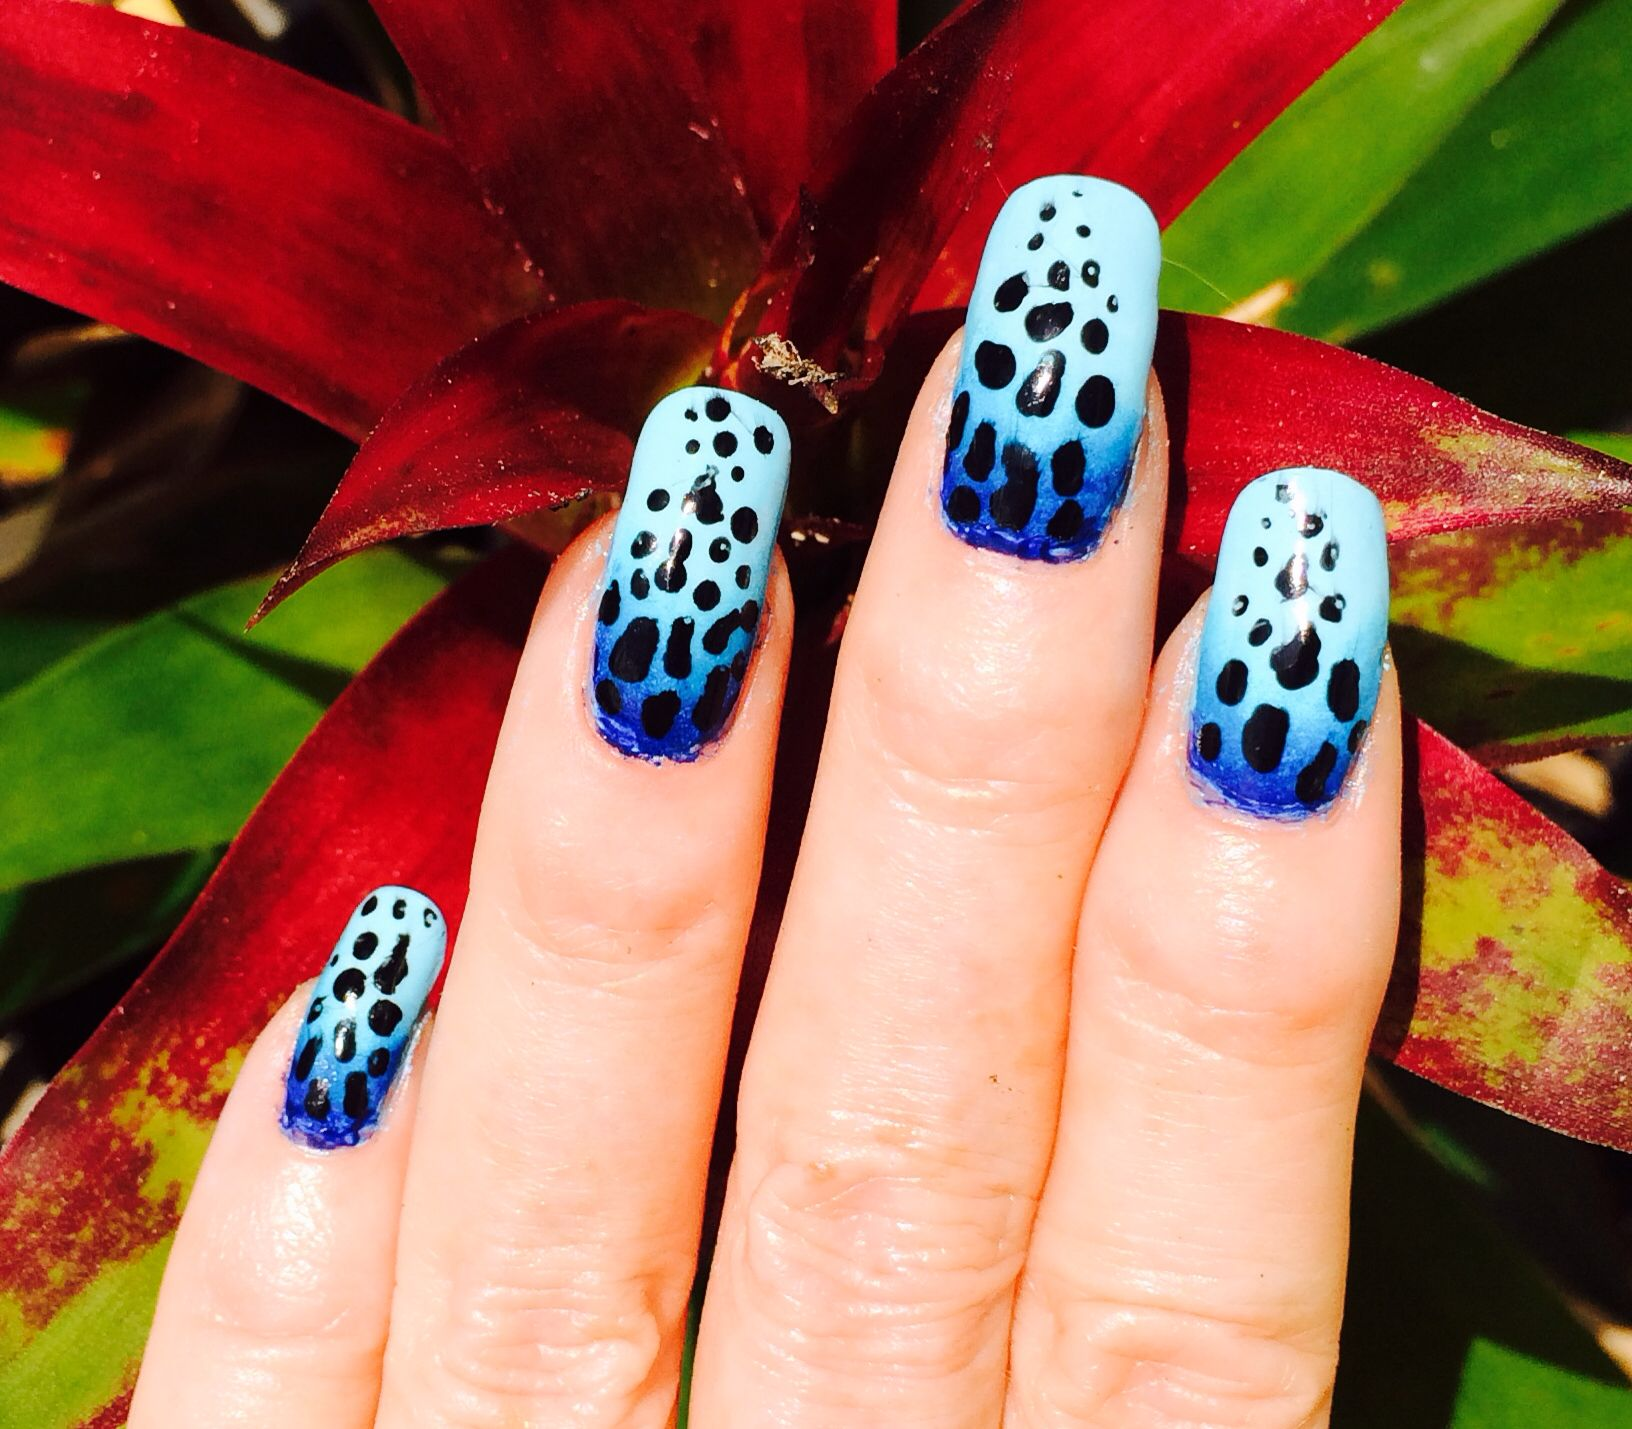 Inspired by nature - Blue poison dart frog   Nails   Pinterest ...